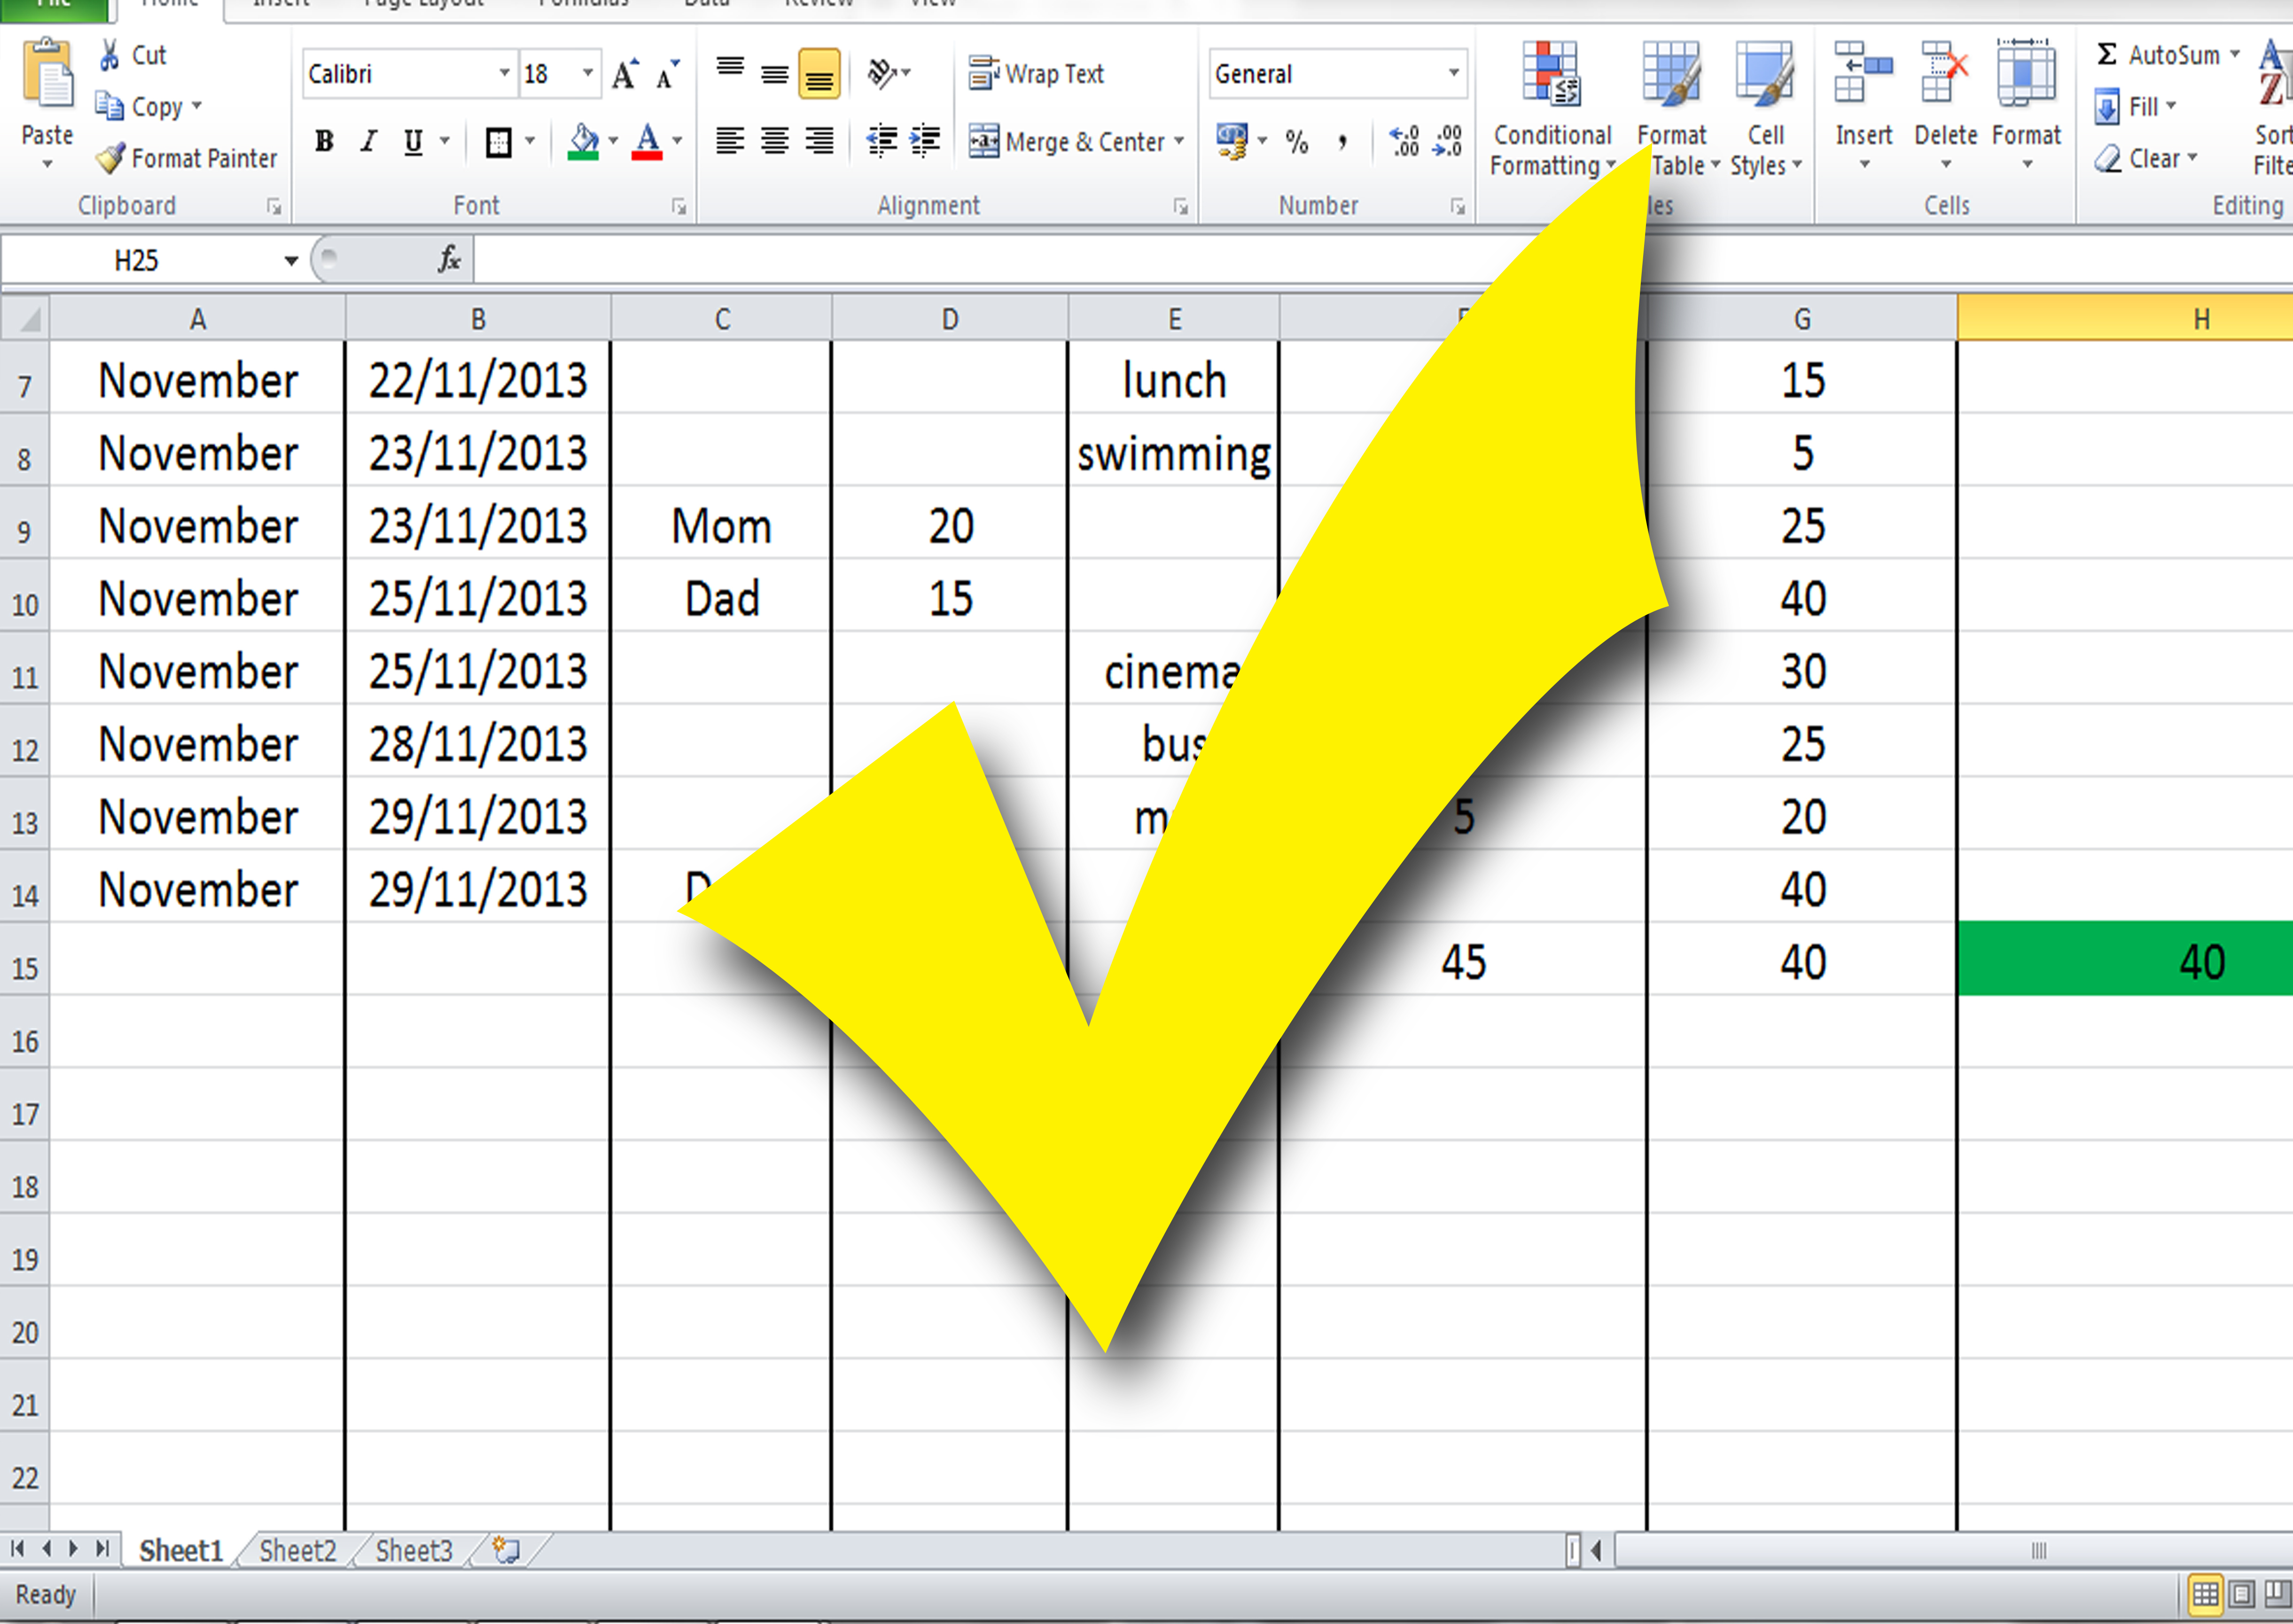 How To Make An Excel Spreadsheet For Budget Within How To Build A Budget Spreadsheet Teenagers: 13 Steps